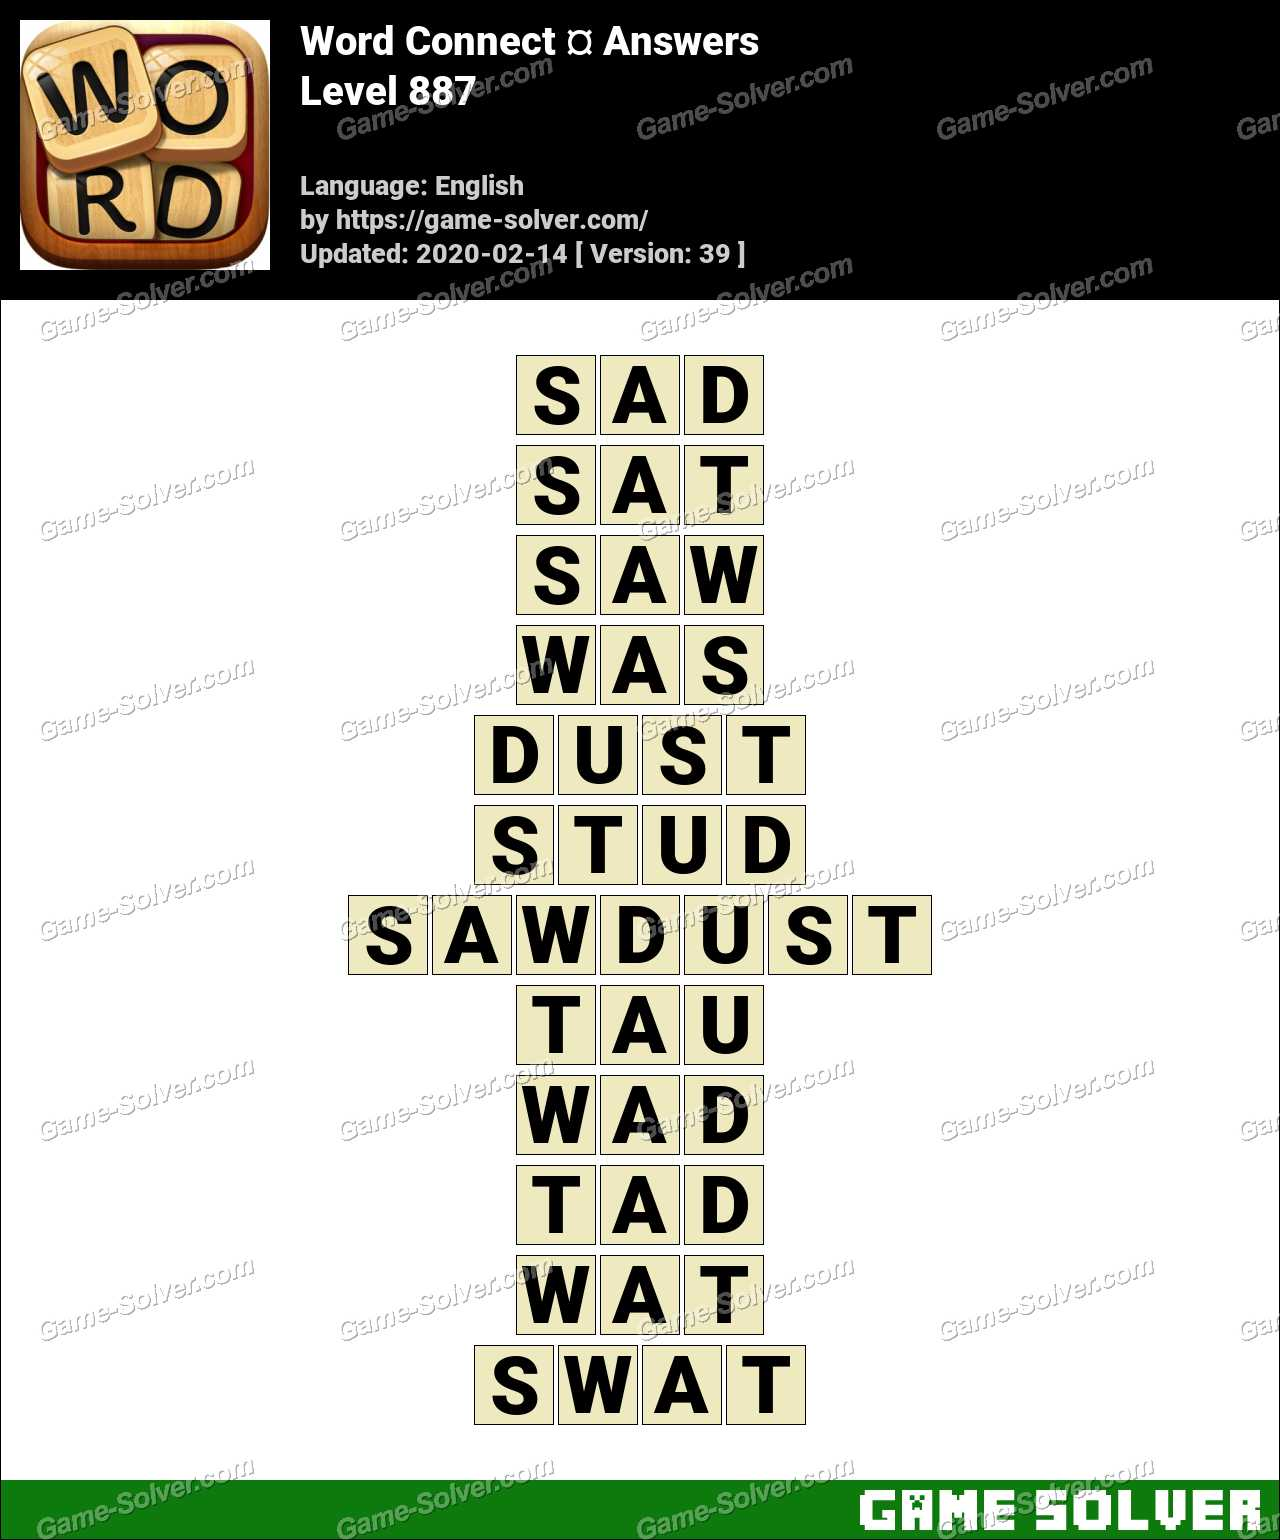 Word Connect Level 887 Answers